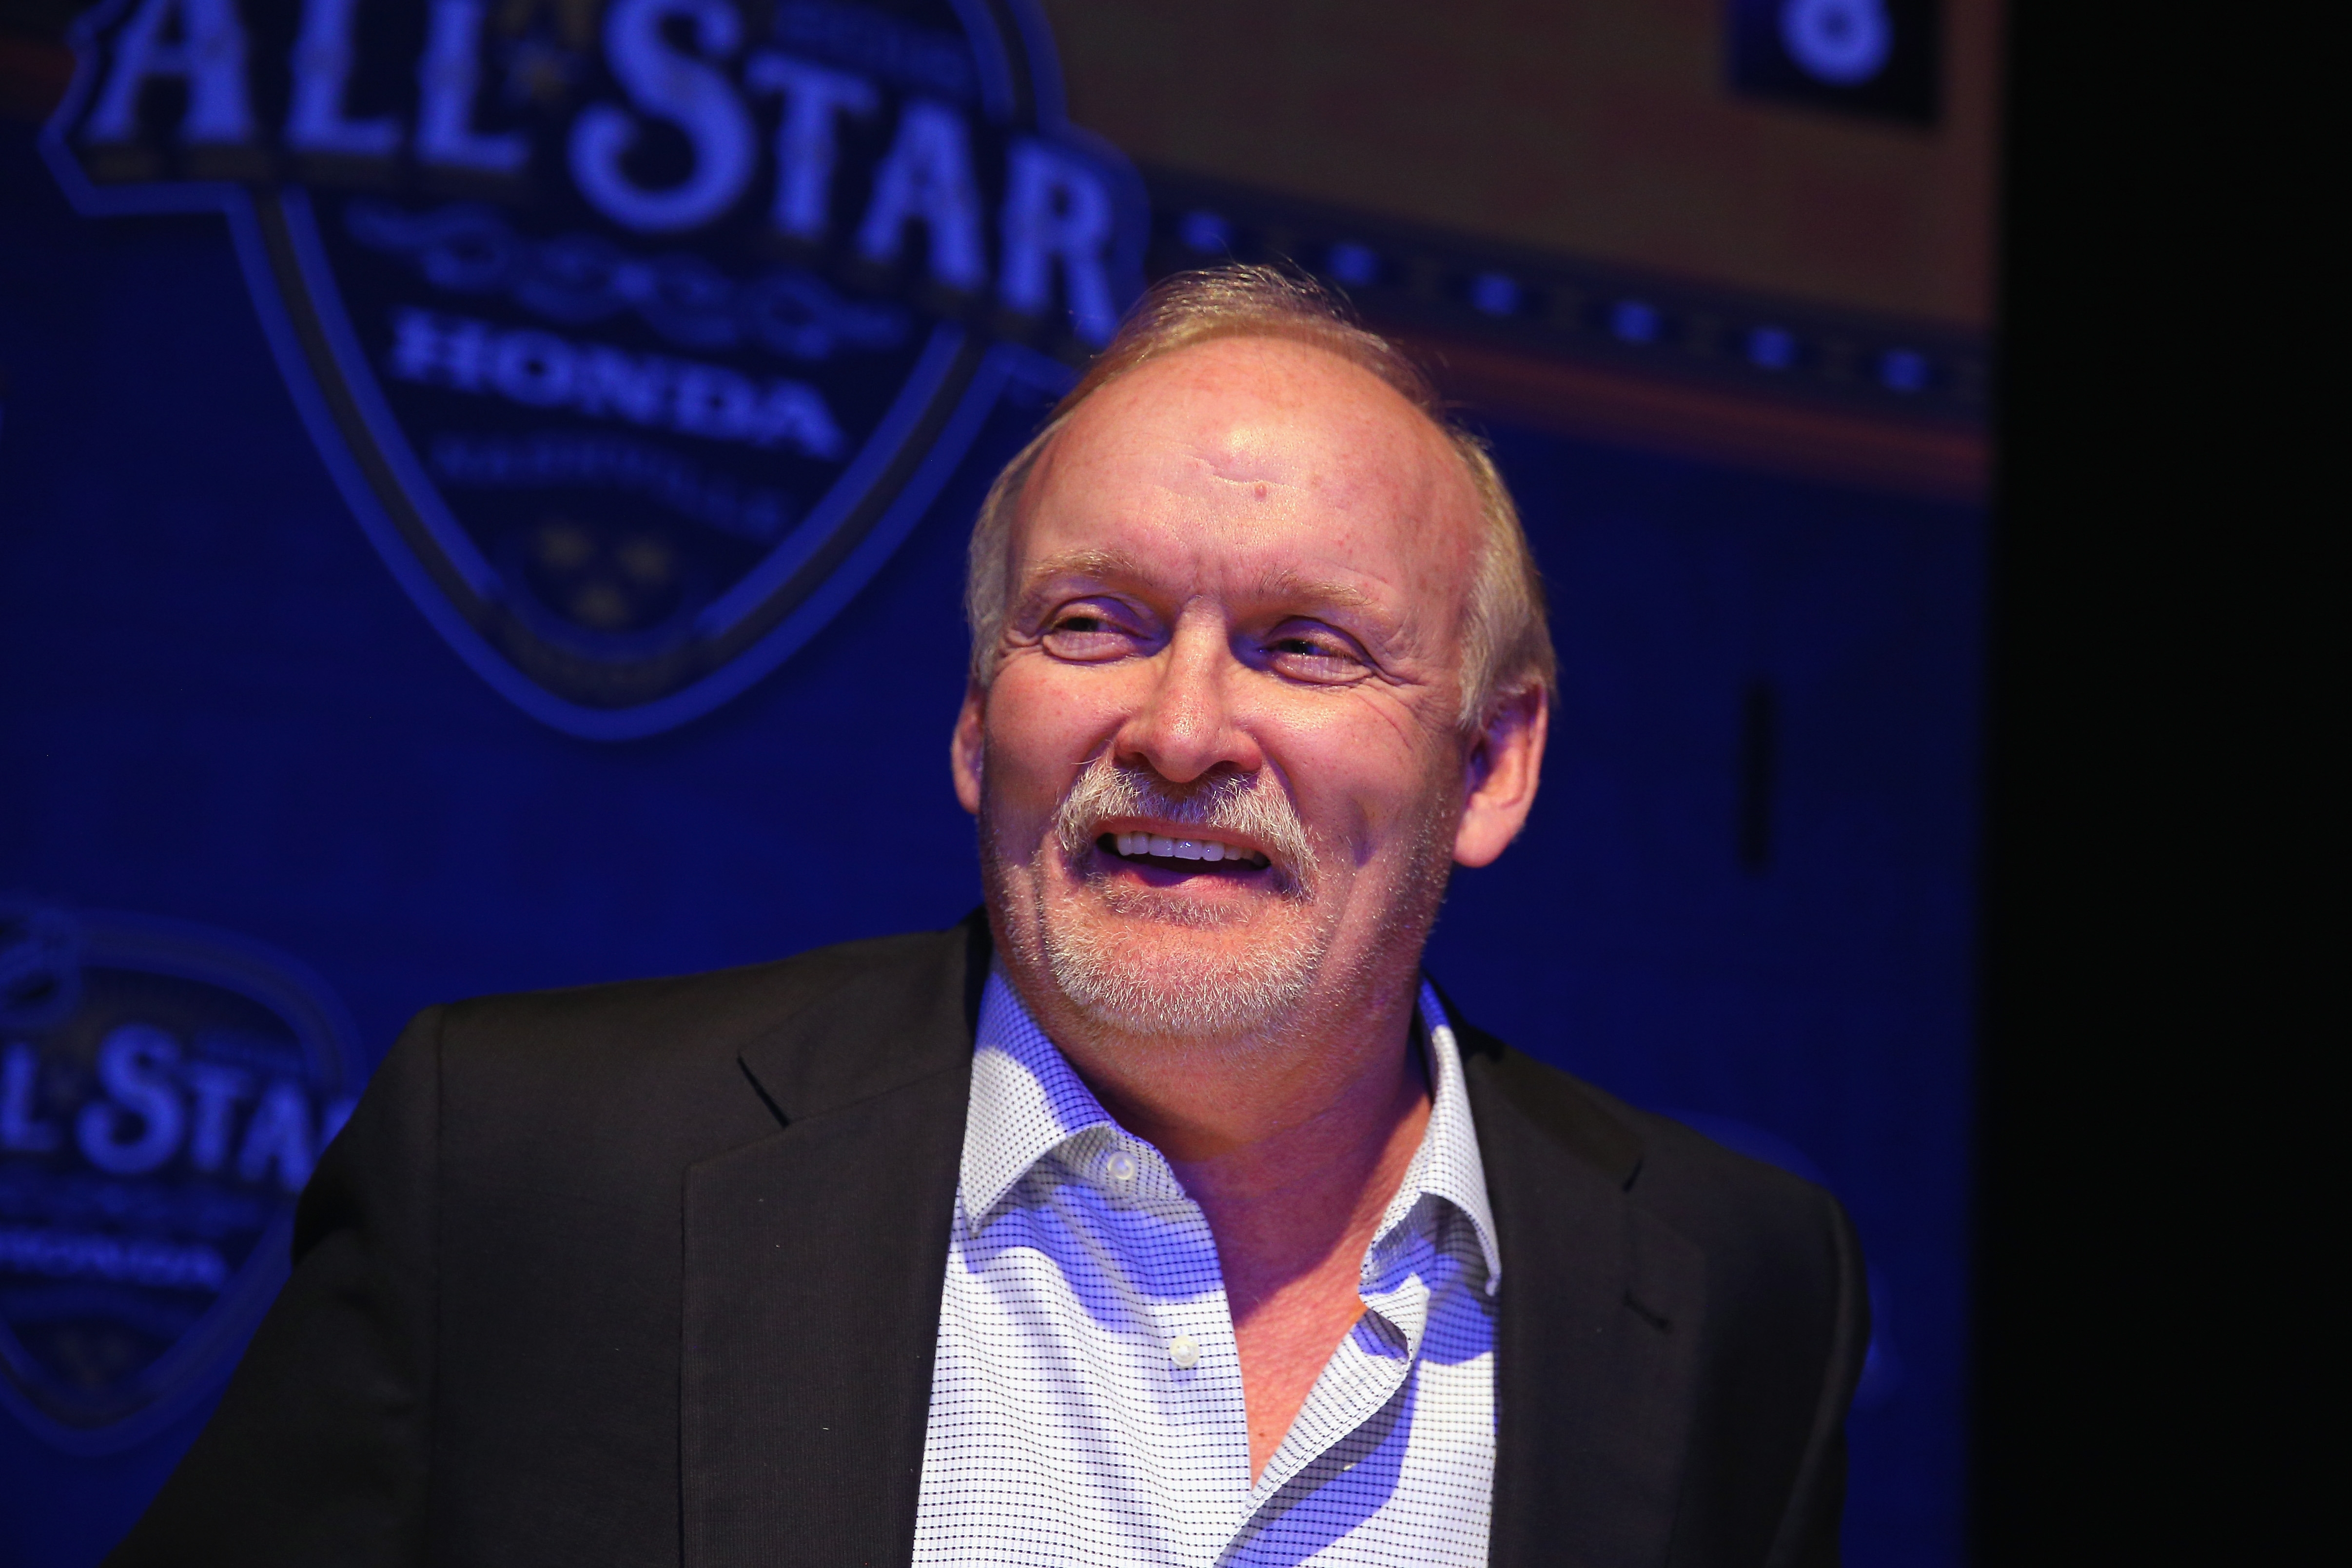 Lindy Ruff has many players on his Central team that can shine in 3-on-3, including Tyler Seguin and Jamie Benn.